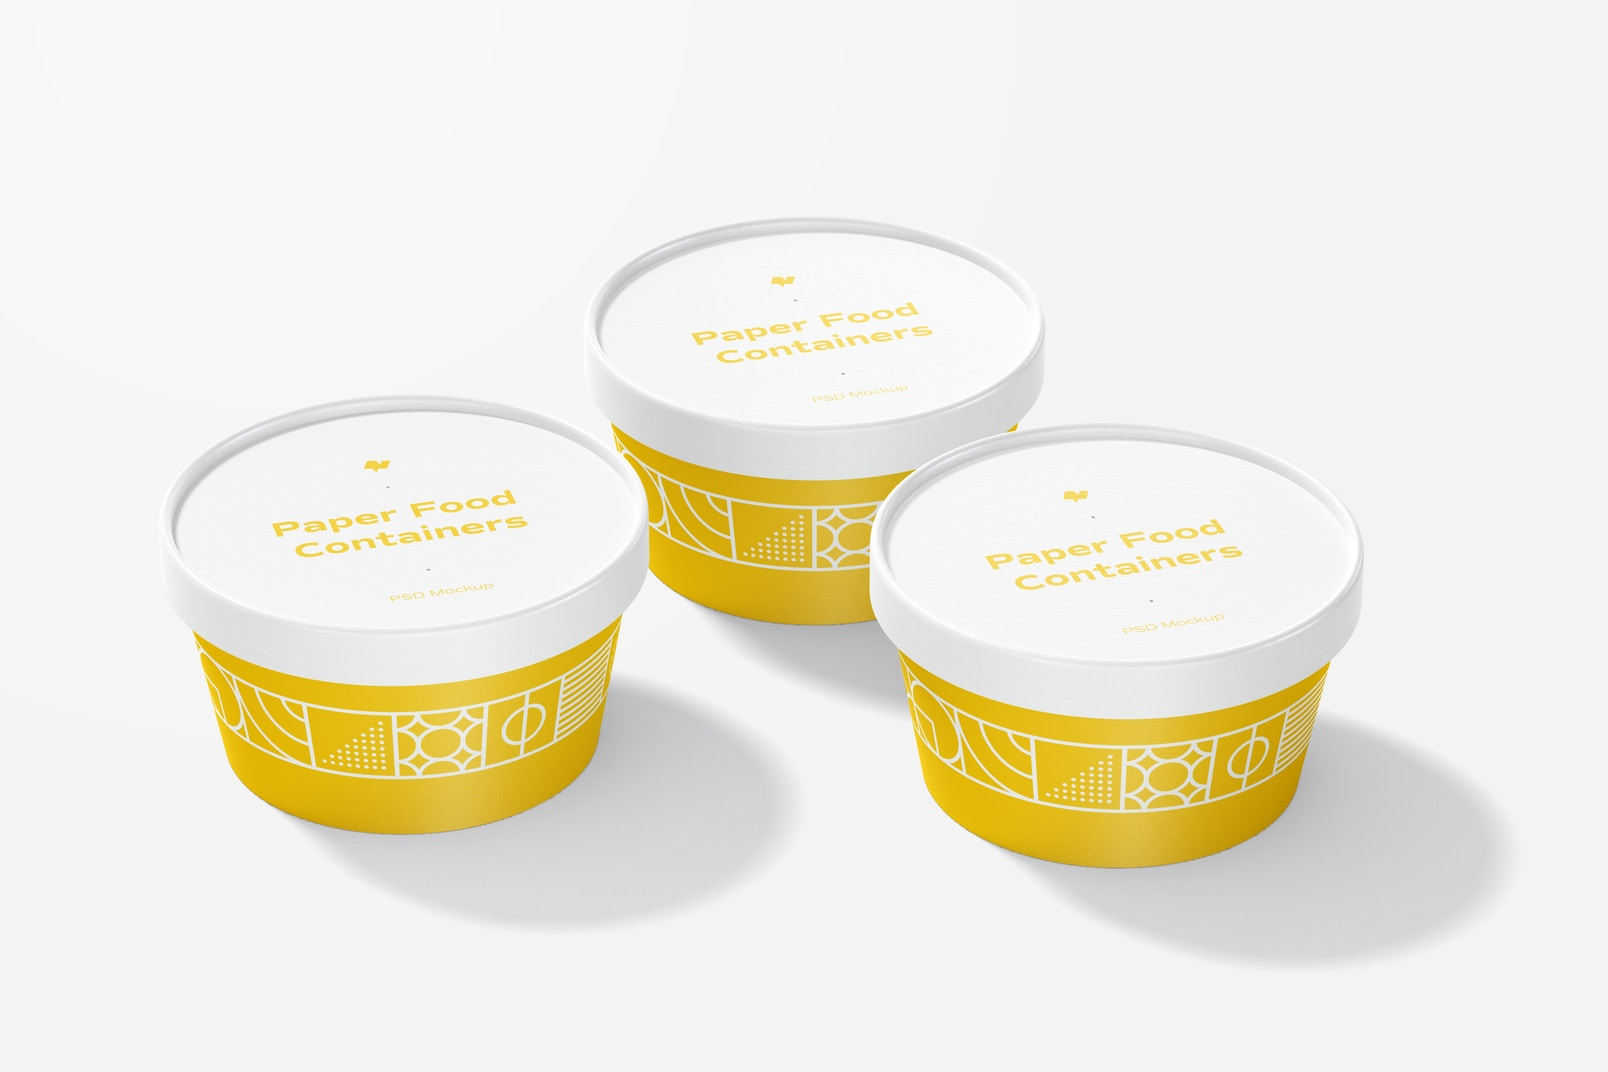 Round Paper Food Containers Mockup, Closed